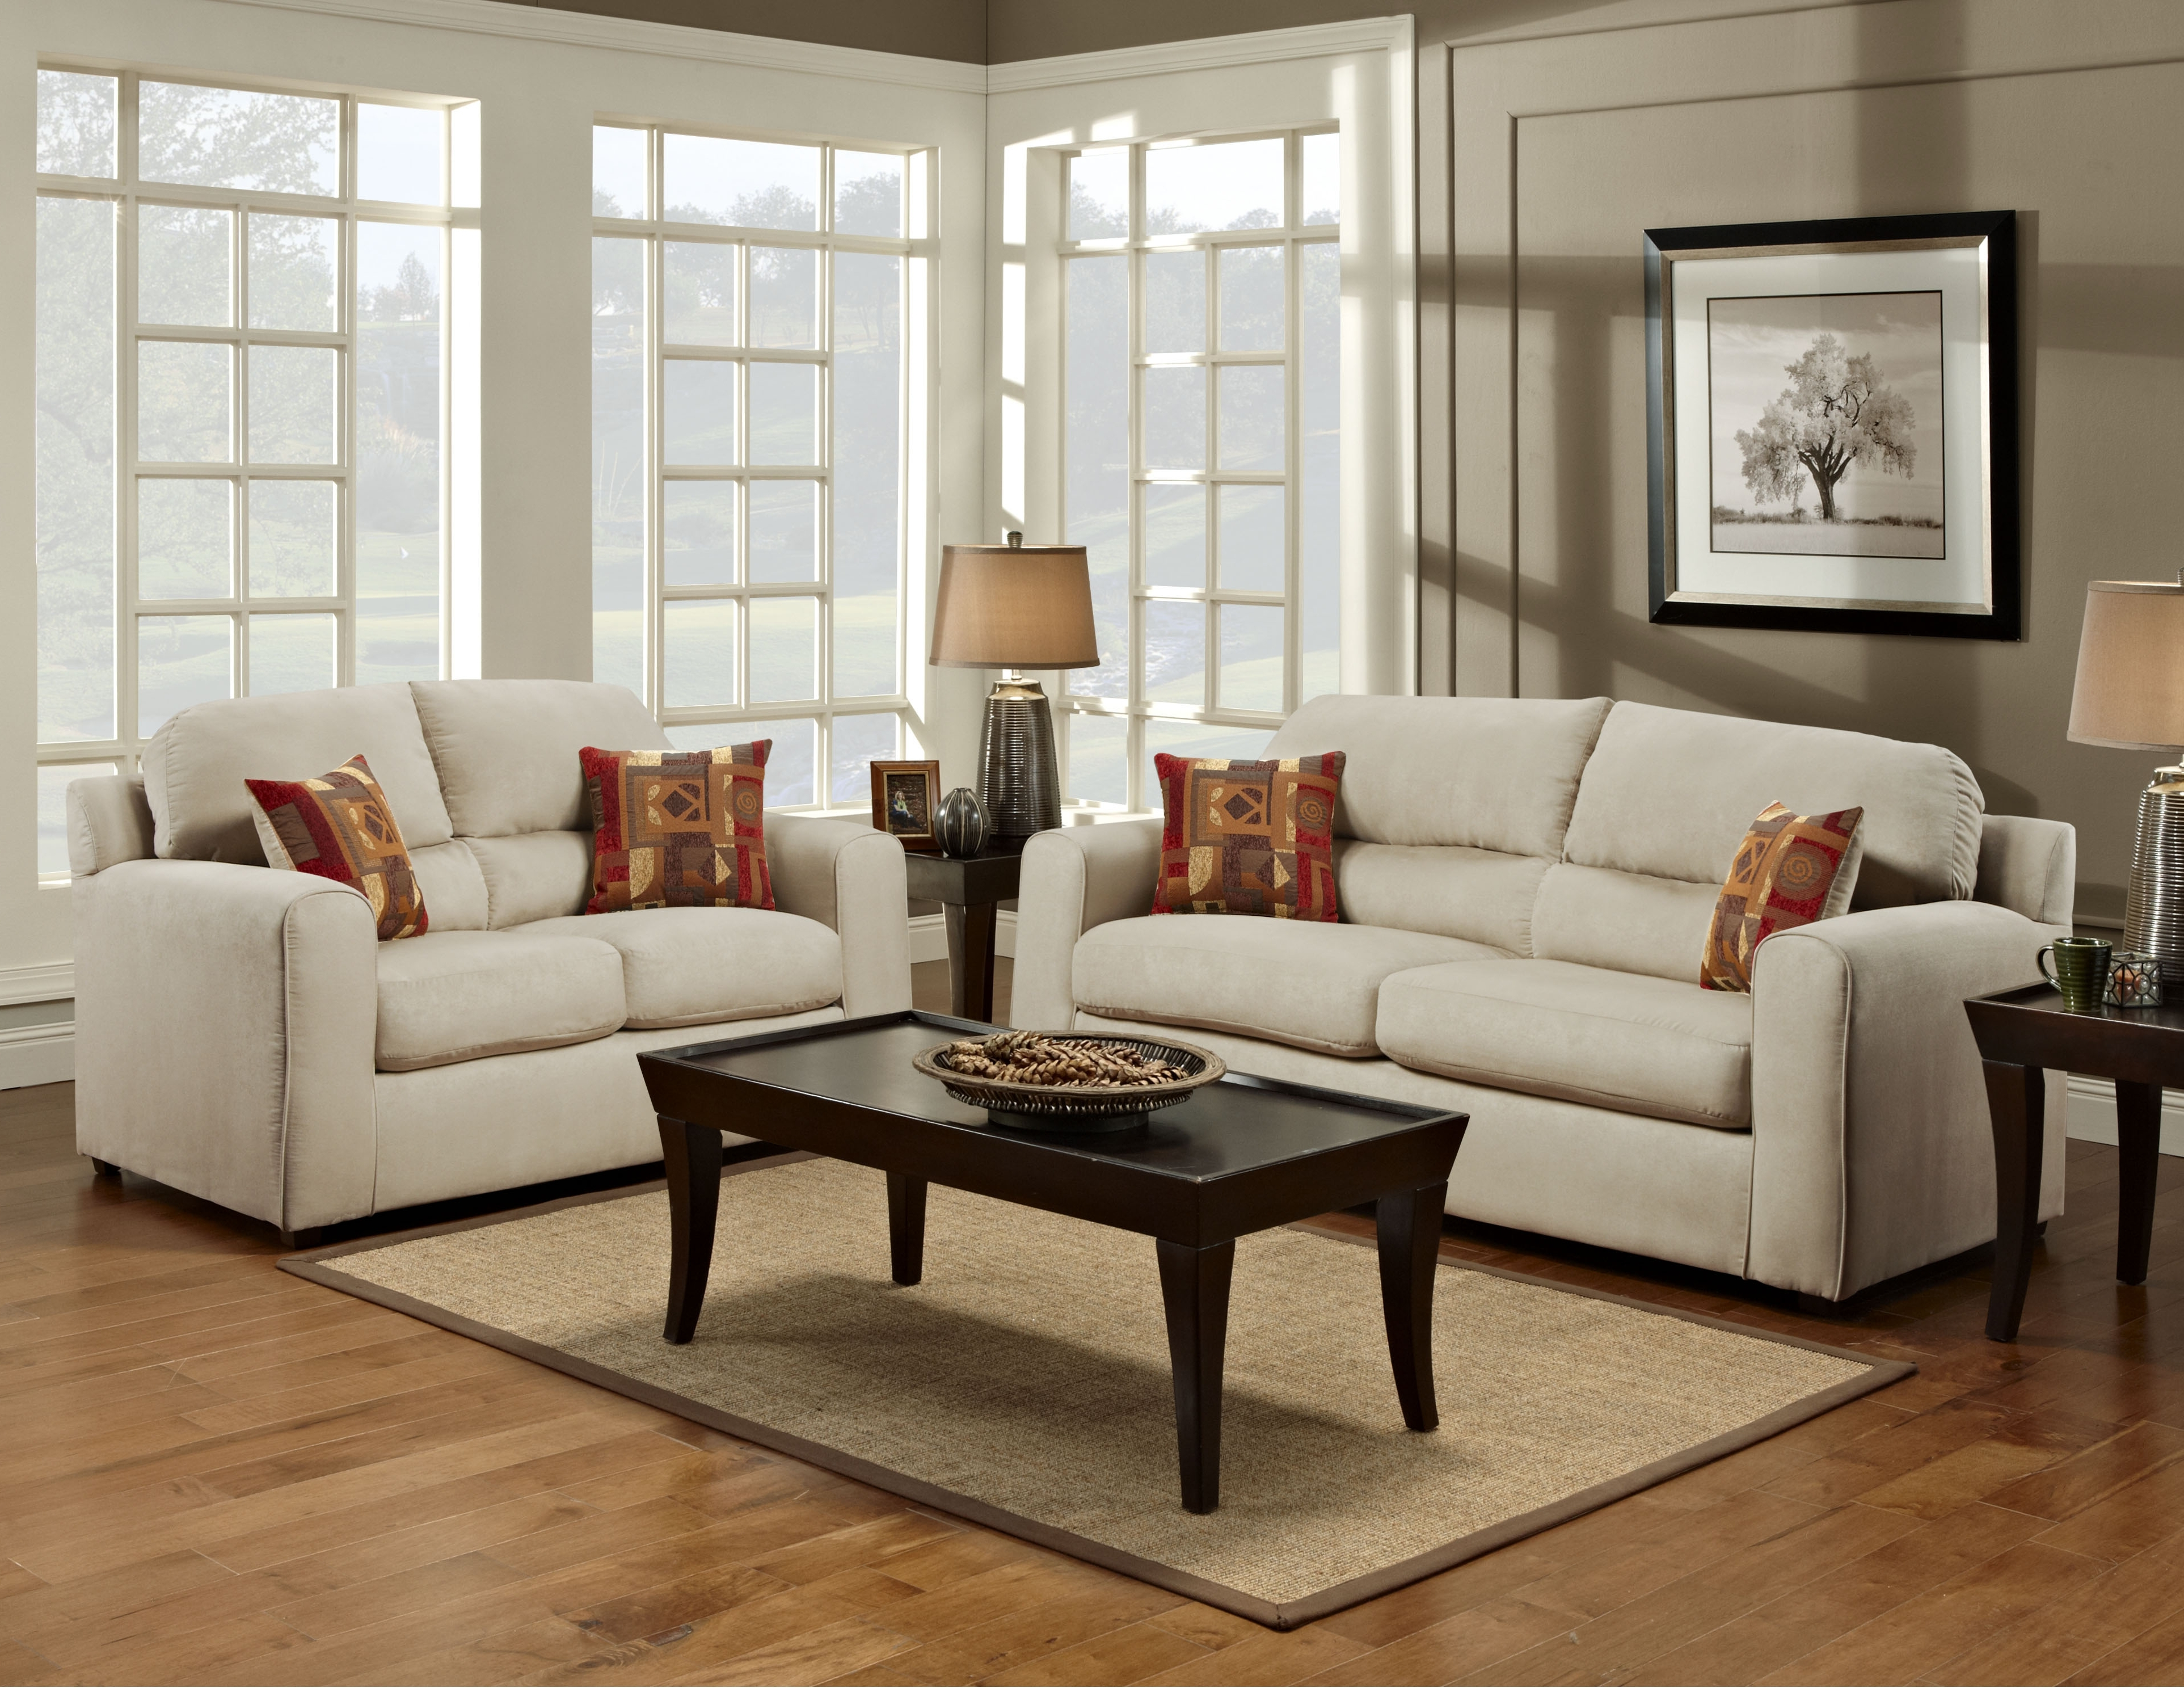 Furniture: Miraculous Nashville Furniture With Nice Design For With Favorite Murfreesboro Tn Sectional Sofas (View 2 of 15)